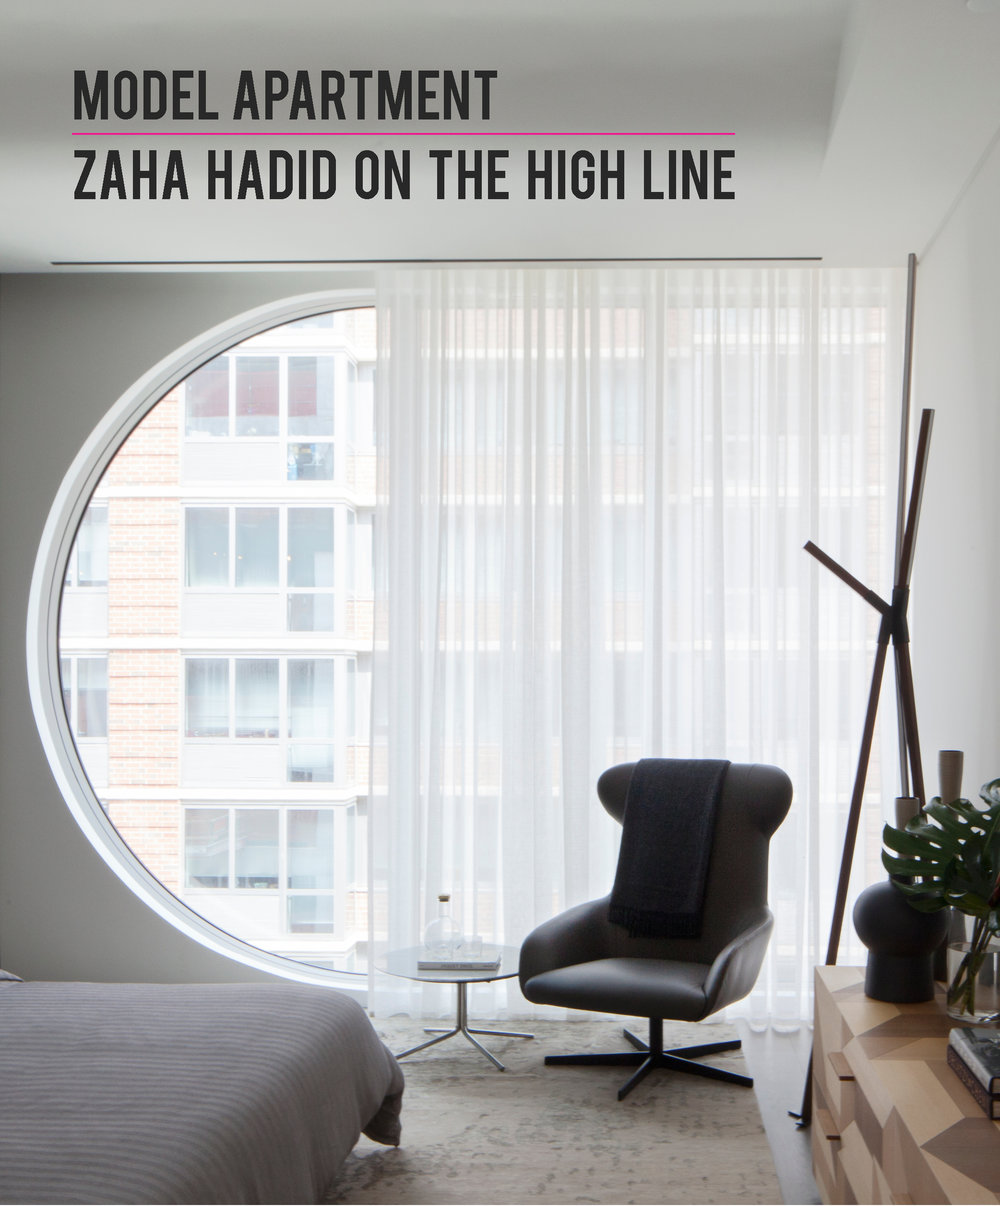 press_zaha model apartment.jpg